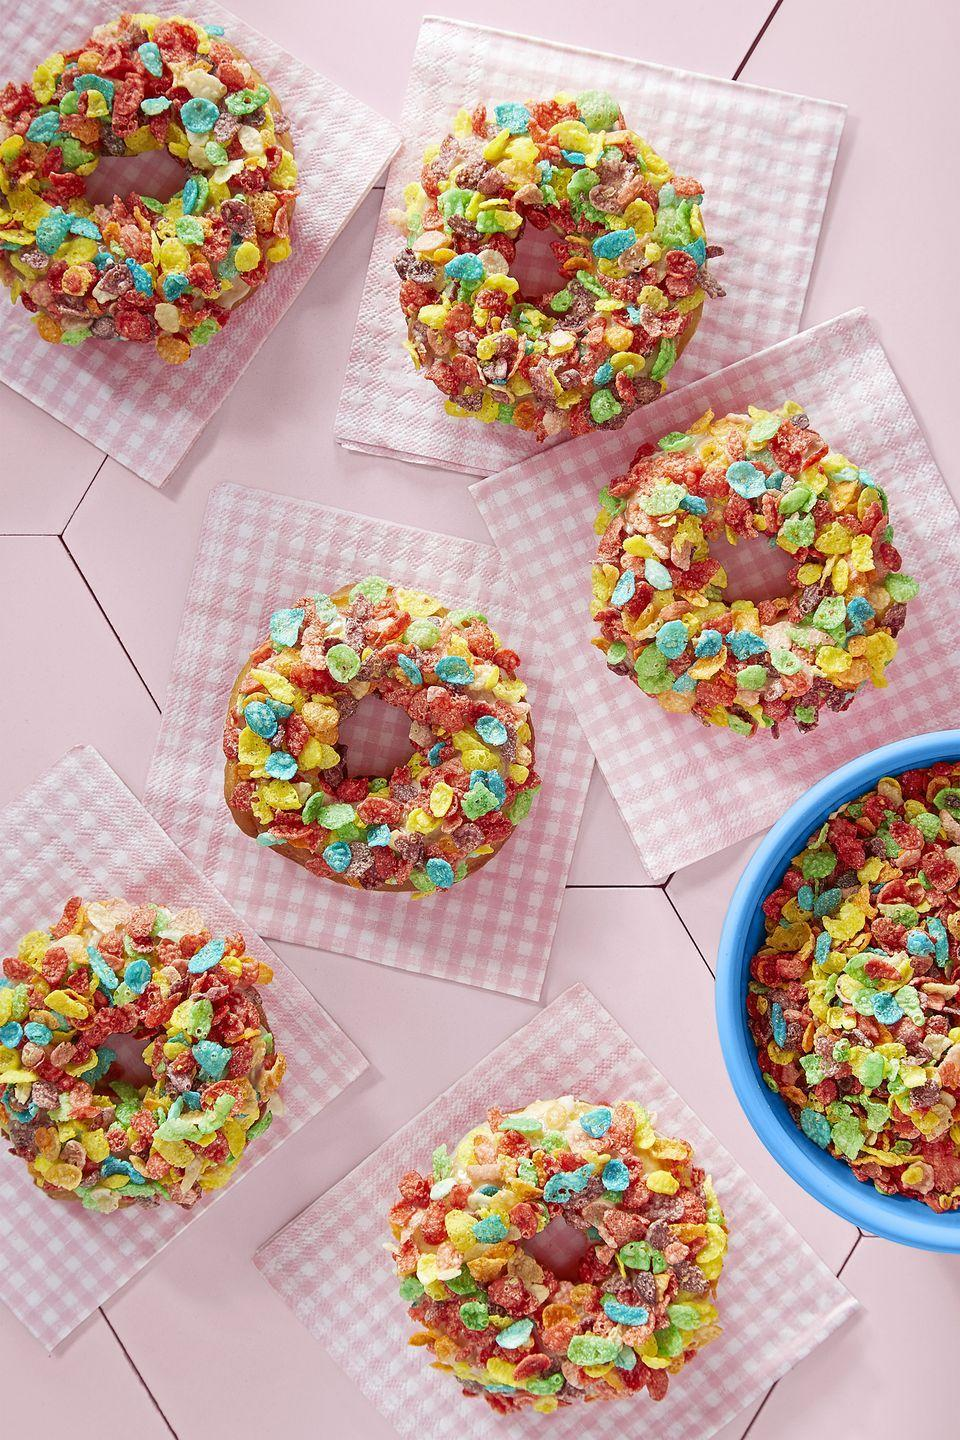 """<p>You'll feel like a kid again indulging in these cereal-topped donuts. </p><p><strong><a href=""""https://www.countryliving.com/food-drinks/recipes/a46352/fruity-pebbles-doughnuts-recipe/"""" rel=""""nofollow noopener"""" target=""""_blank"""" data-ylk=""""slk:Get the recipe"""" class=""""link rapid-noclick-resp"""">Get the recipe</a>.</strong></p>"""